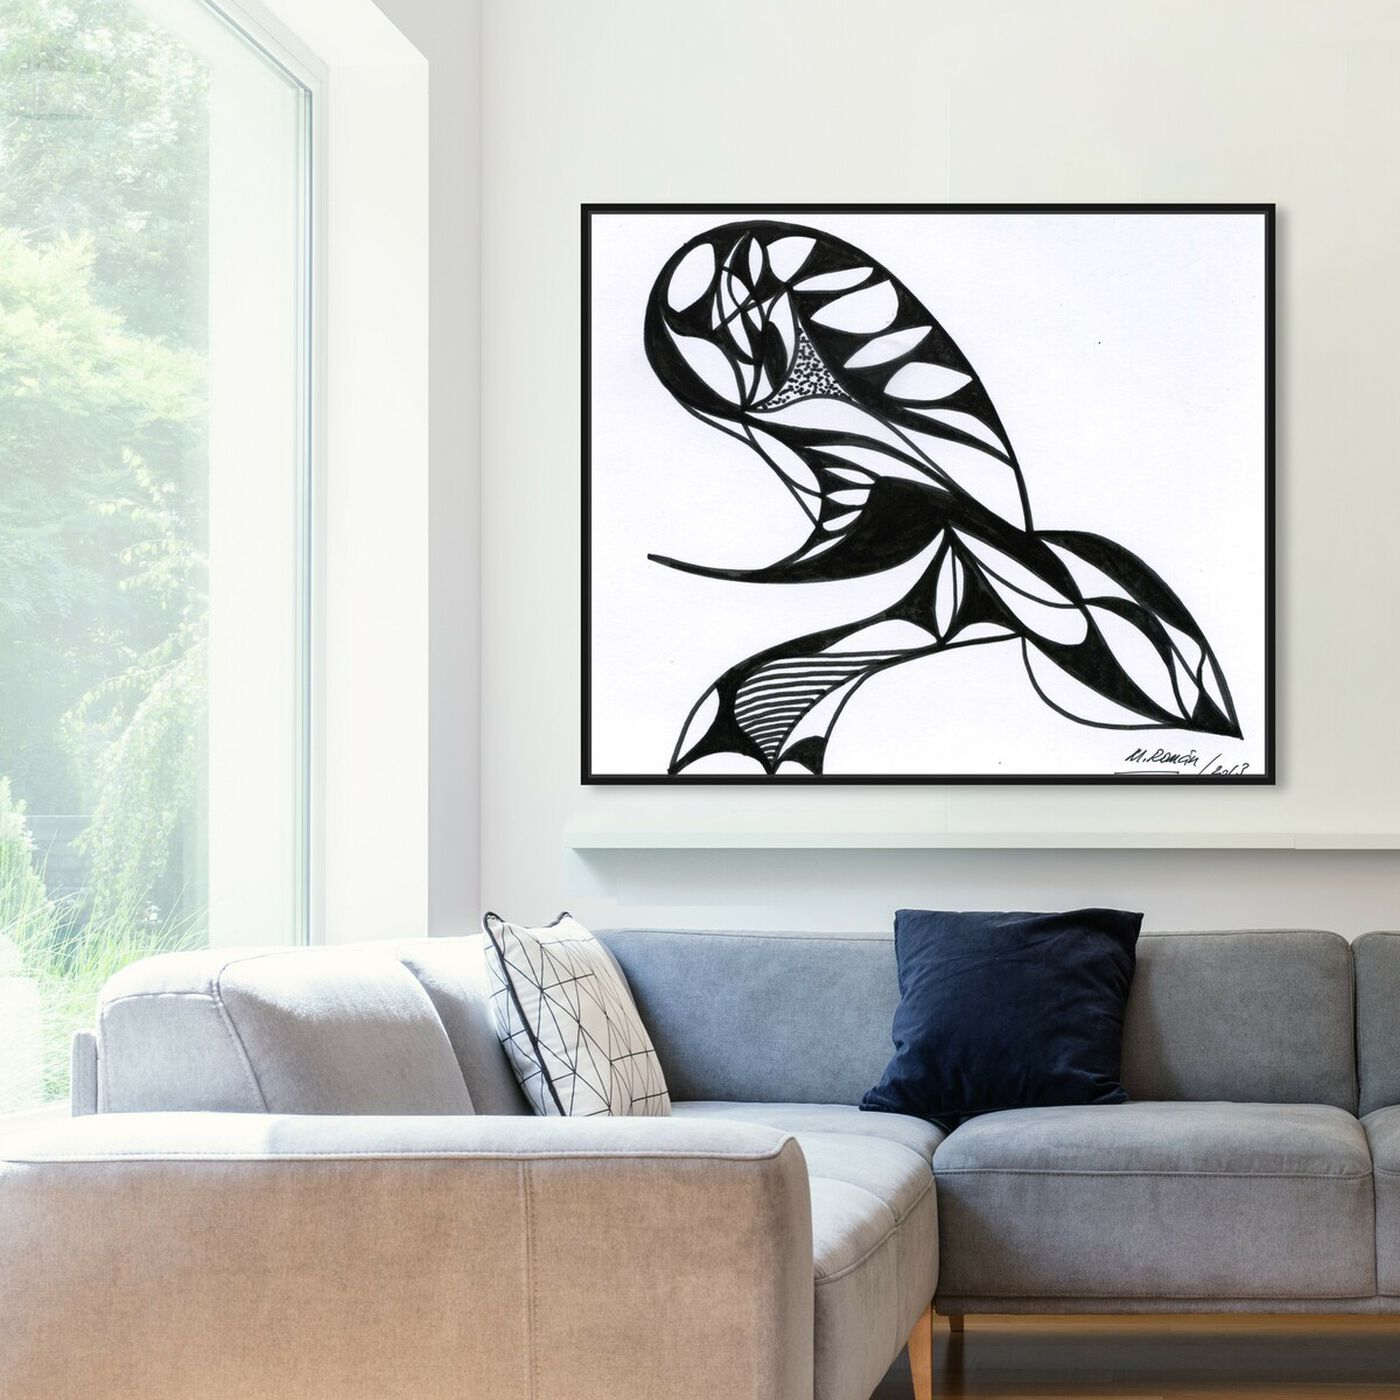 Hanging view of The Sting featuring abstract and shapes art.